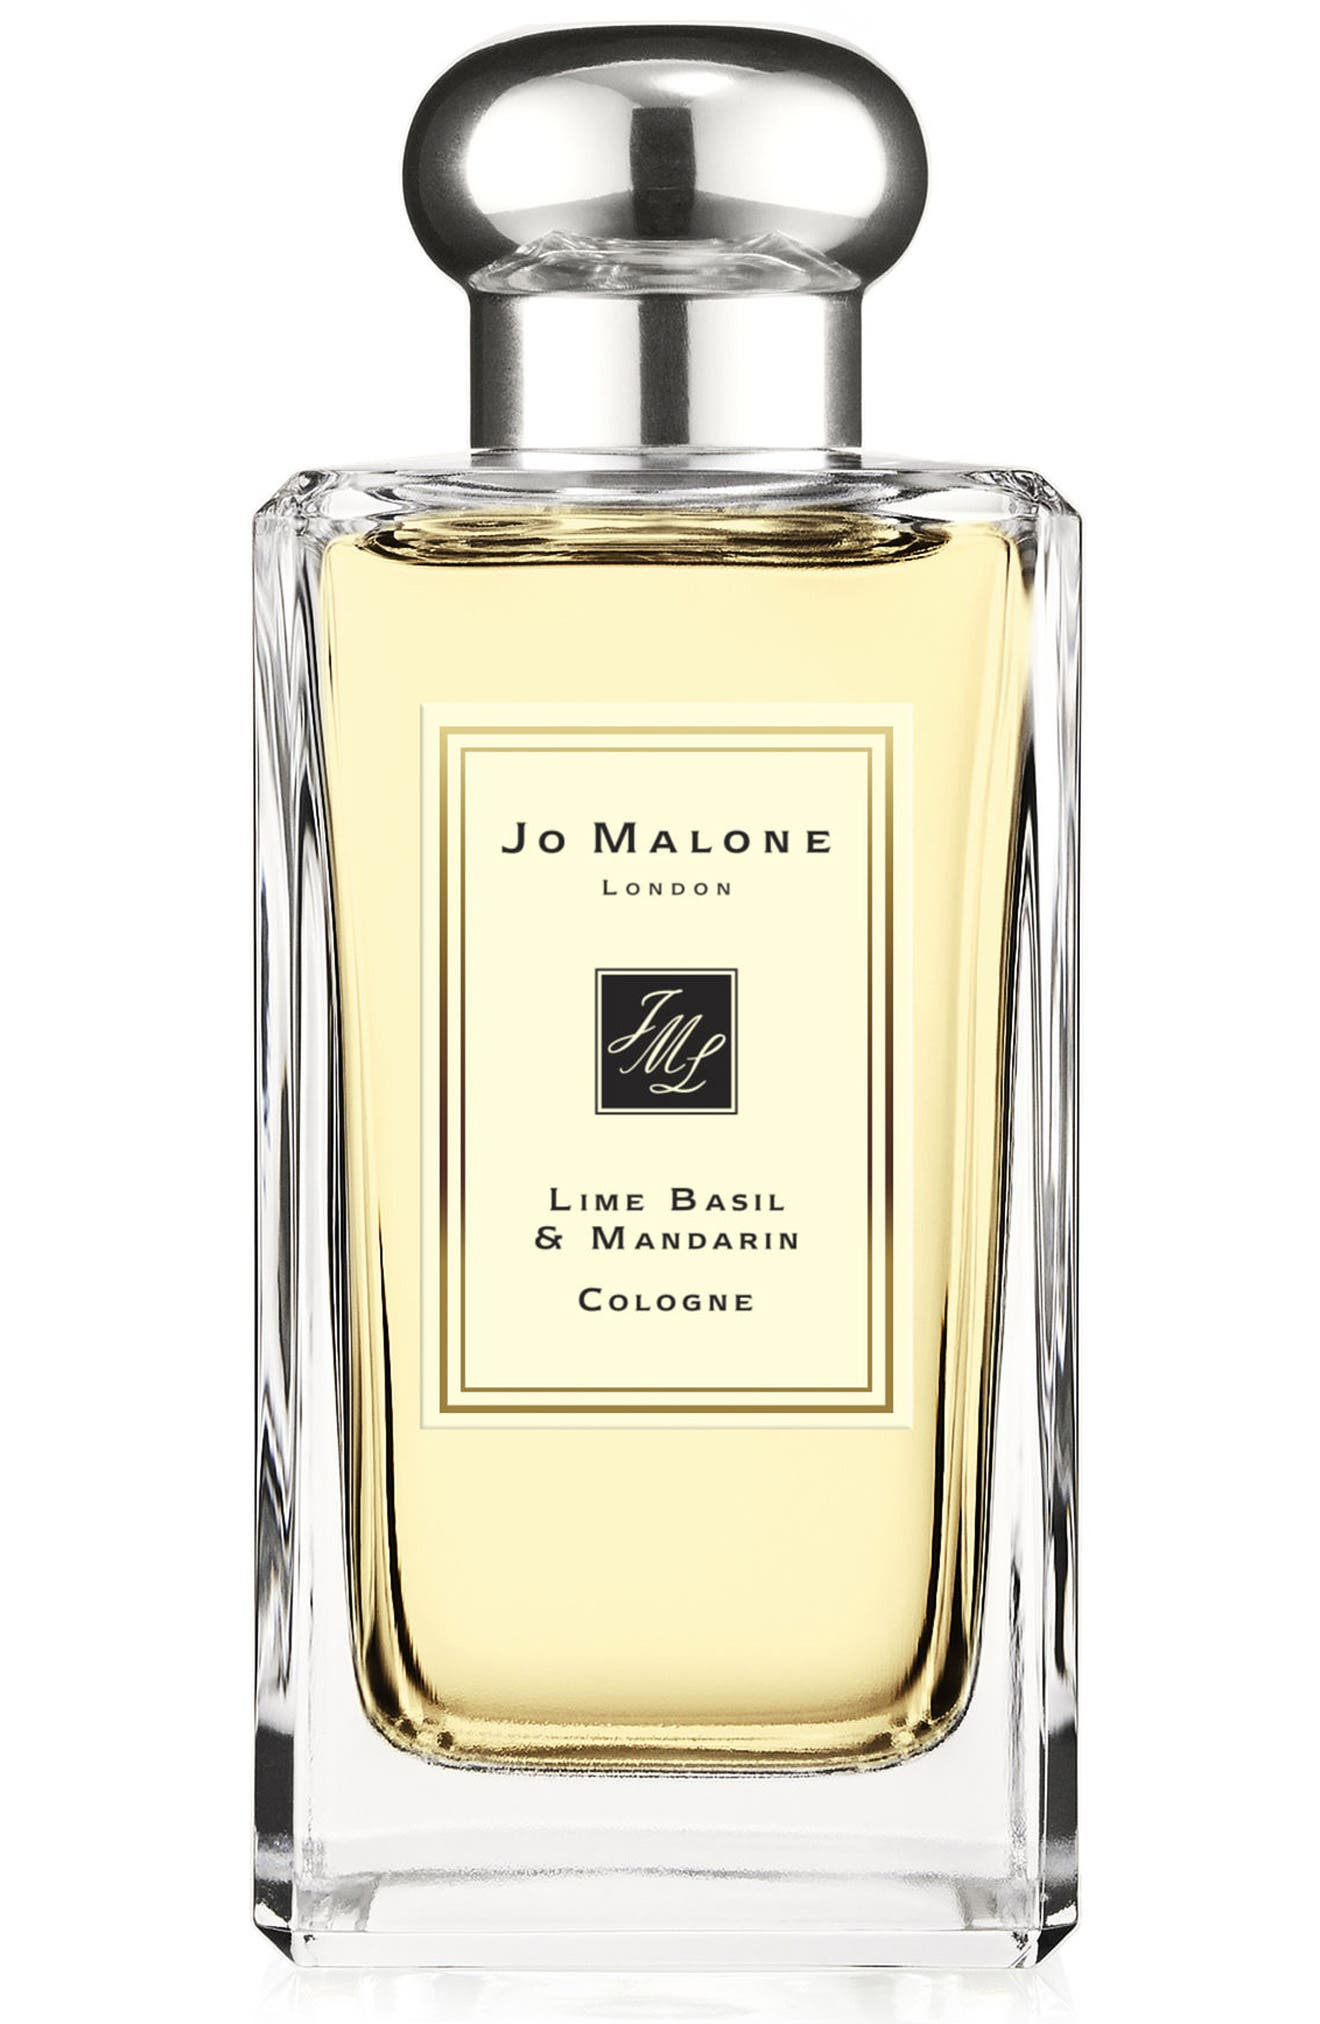 Jo Malone London™ Lime Basil & Mandarin Cologne (3.4 oz.)